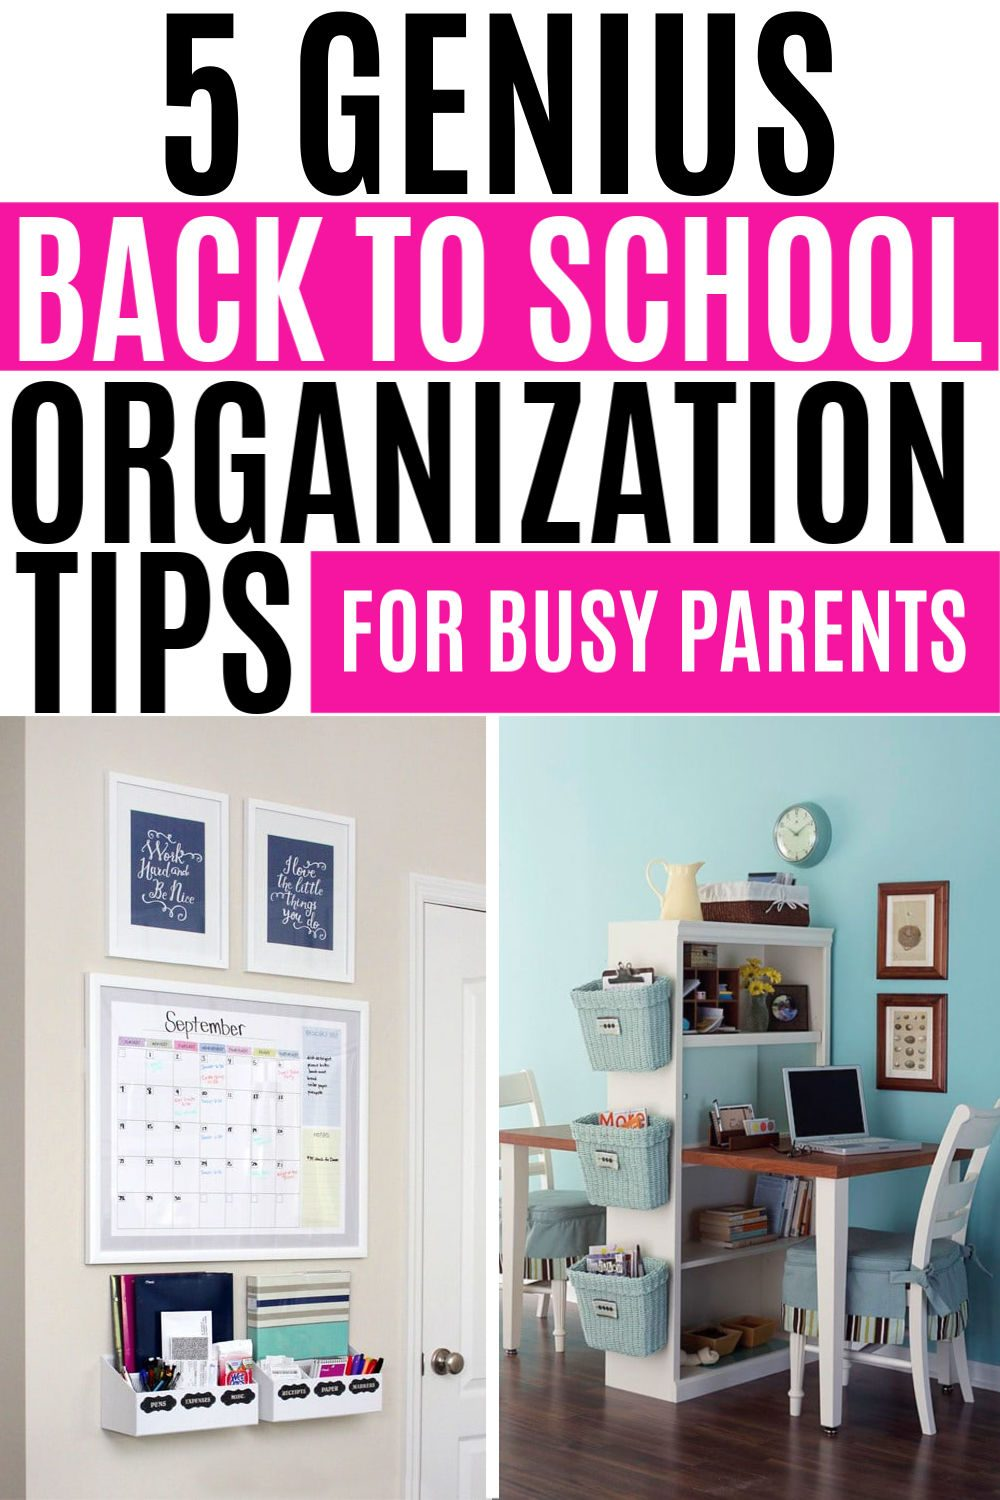 Don't start another school year as a hot mess! Check out these 5 genius tips for back to school organization to get your kids ready for learning! #unclutteredsimplicity